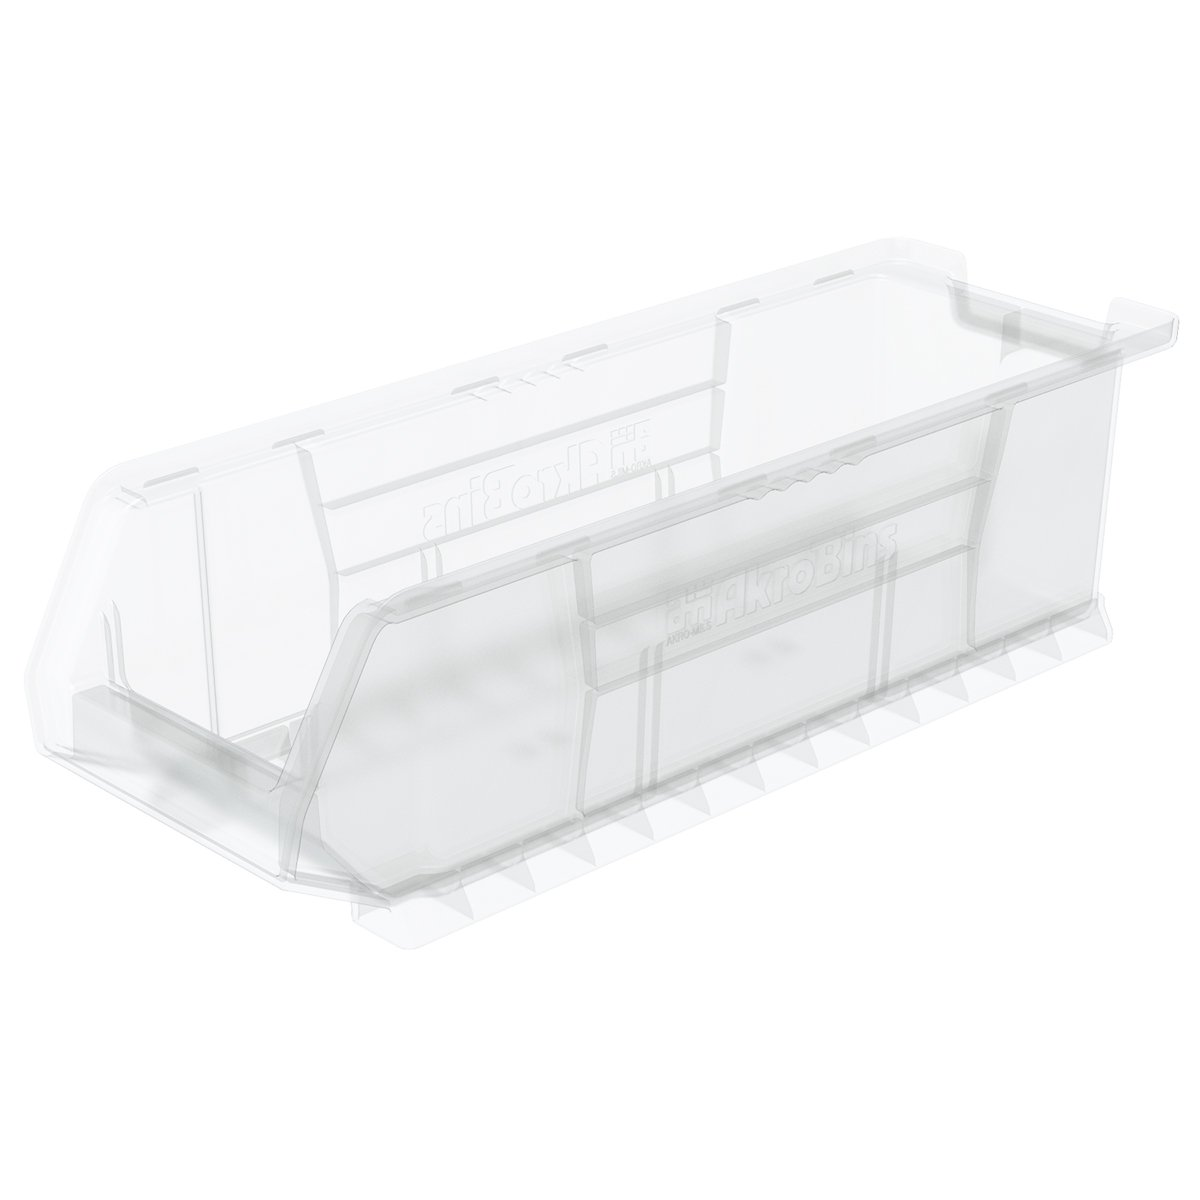 Akro-Mils 30284 24-Inch D by 8-Inch W by 7-Inch H Clear Super Size Plastic Stacking Storage AkroBin, 4-Pack